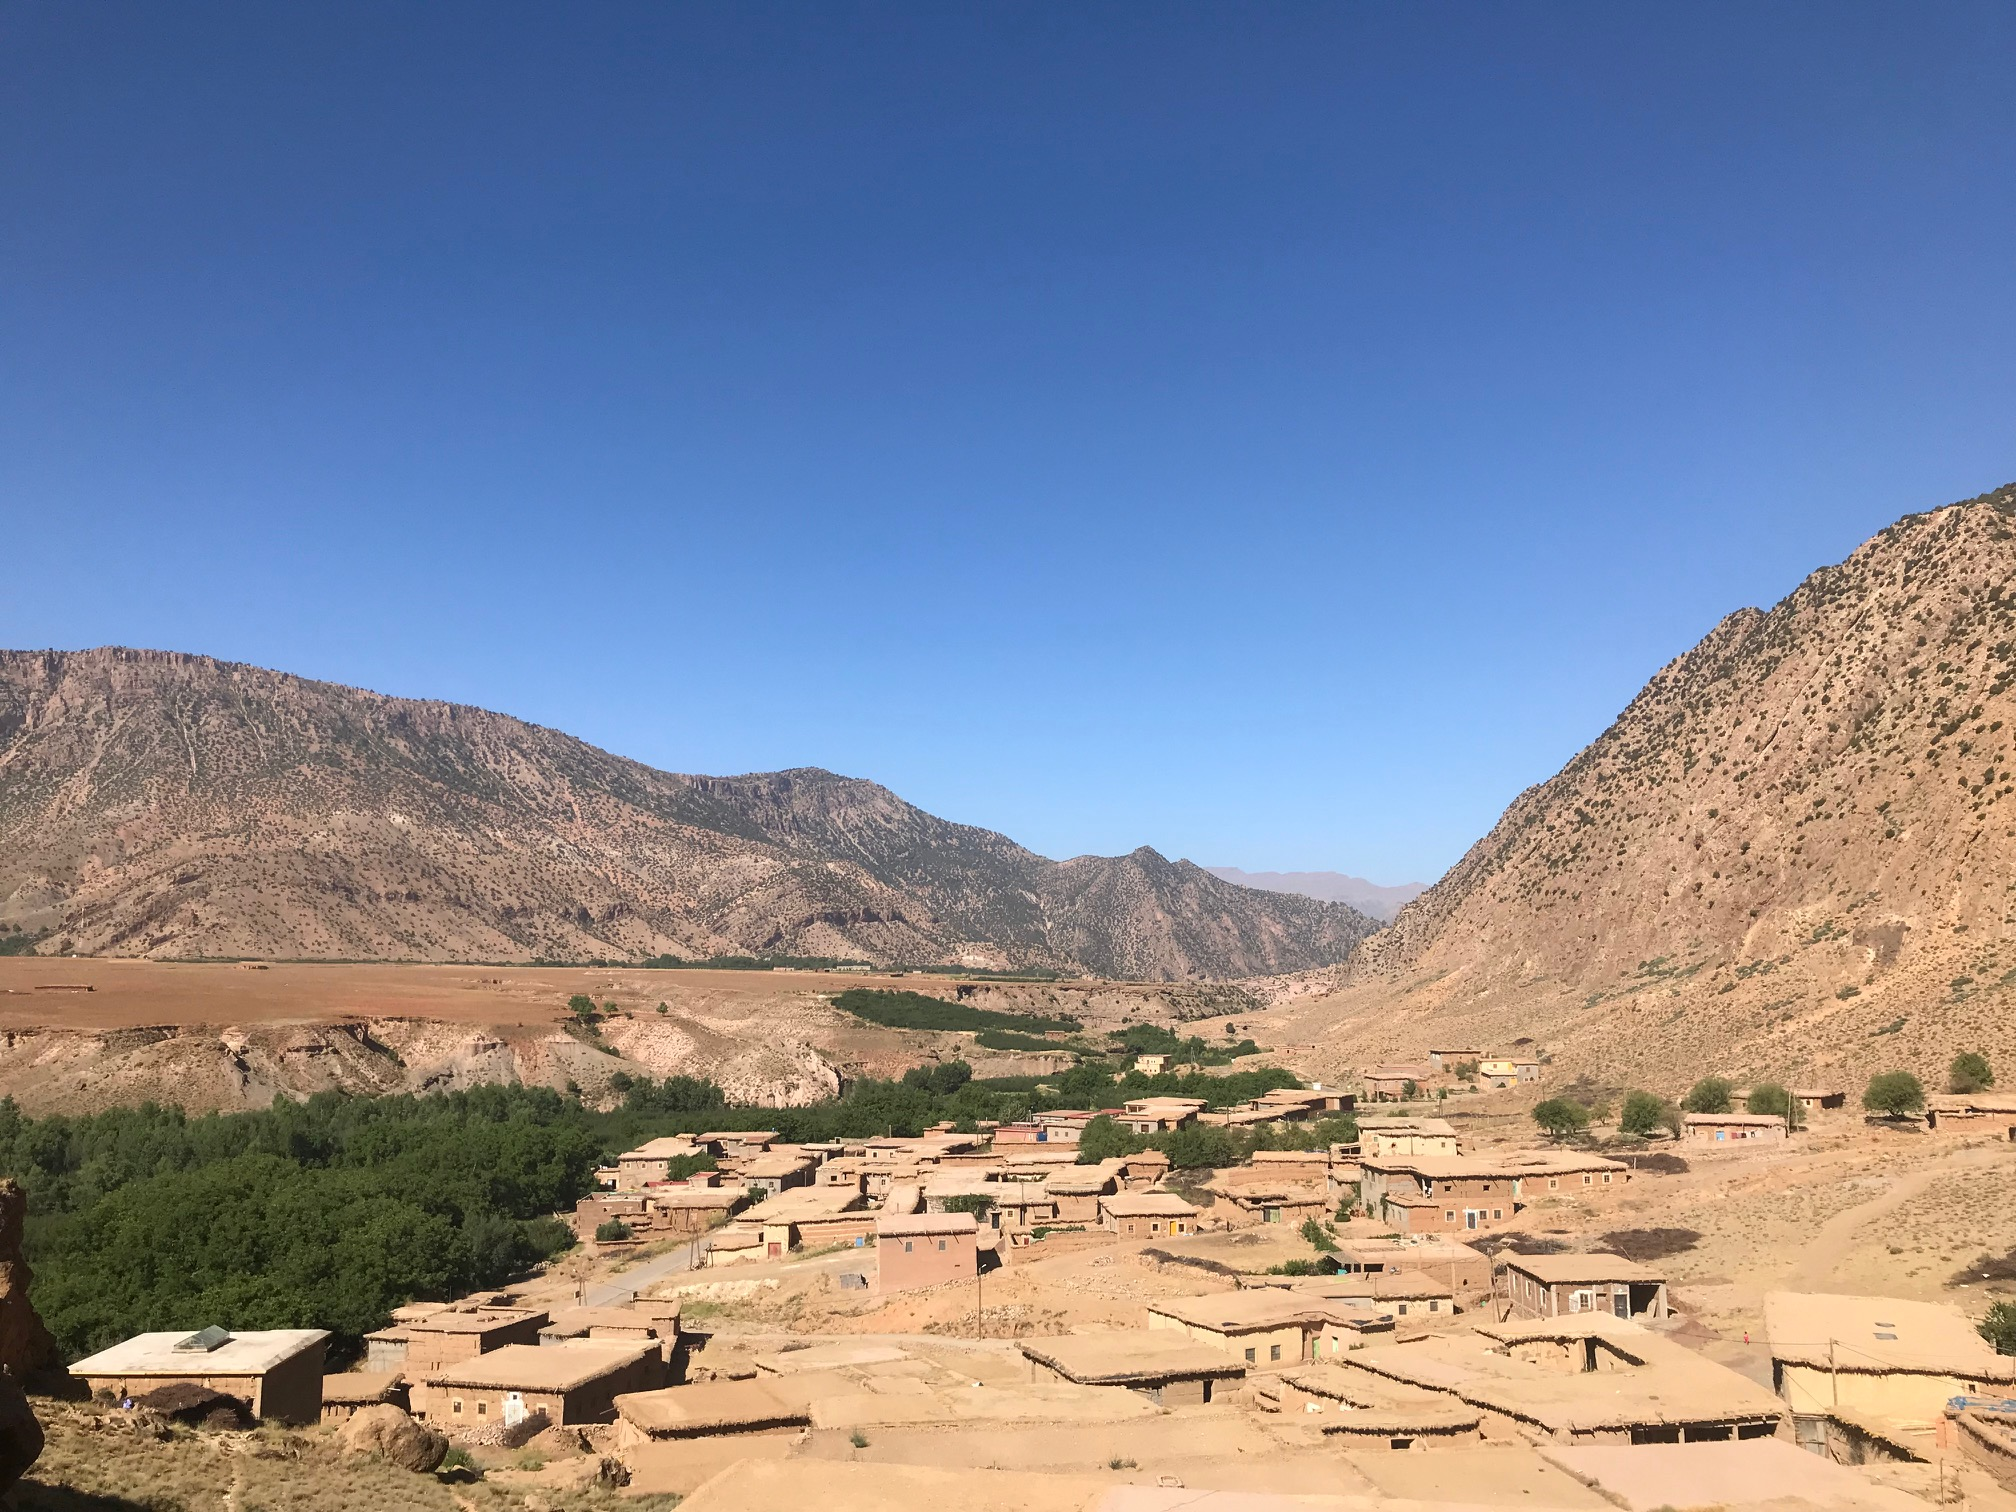 The mud brick houses form a patchwork of square brown roofs near the river.